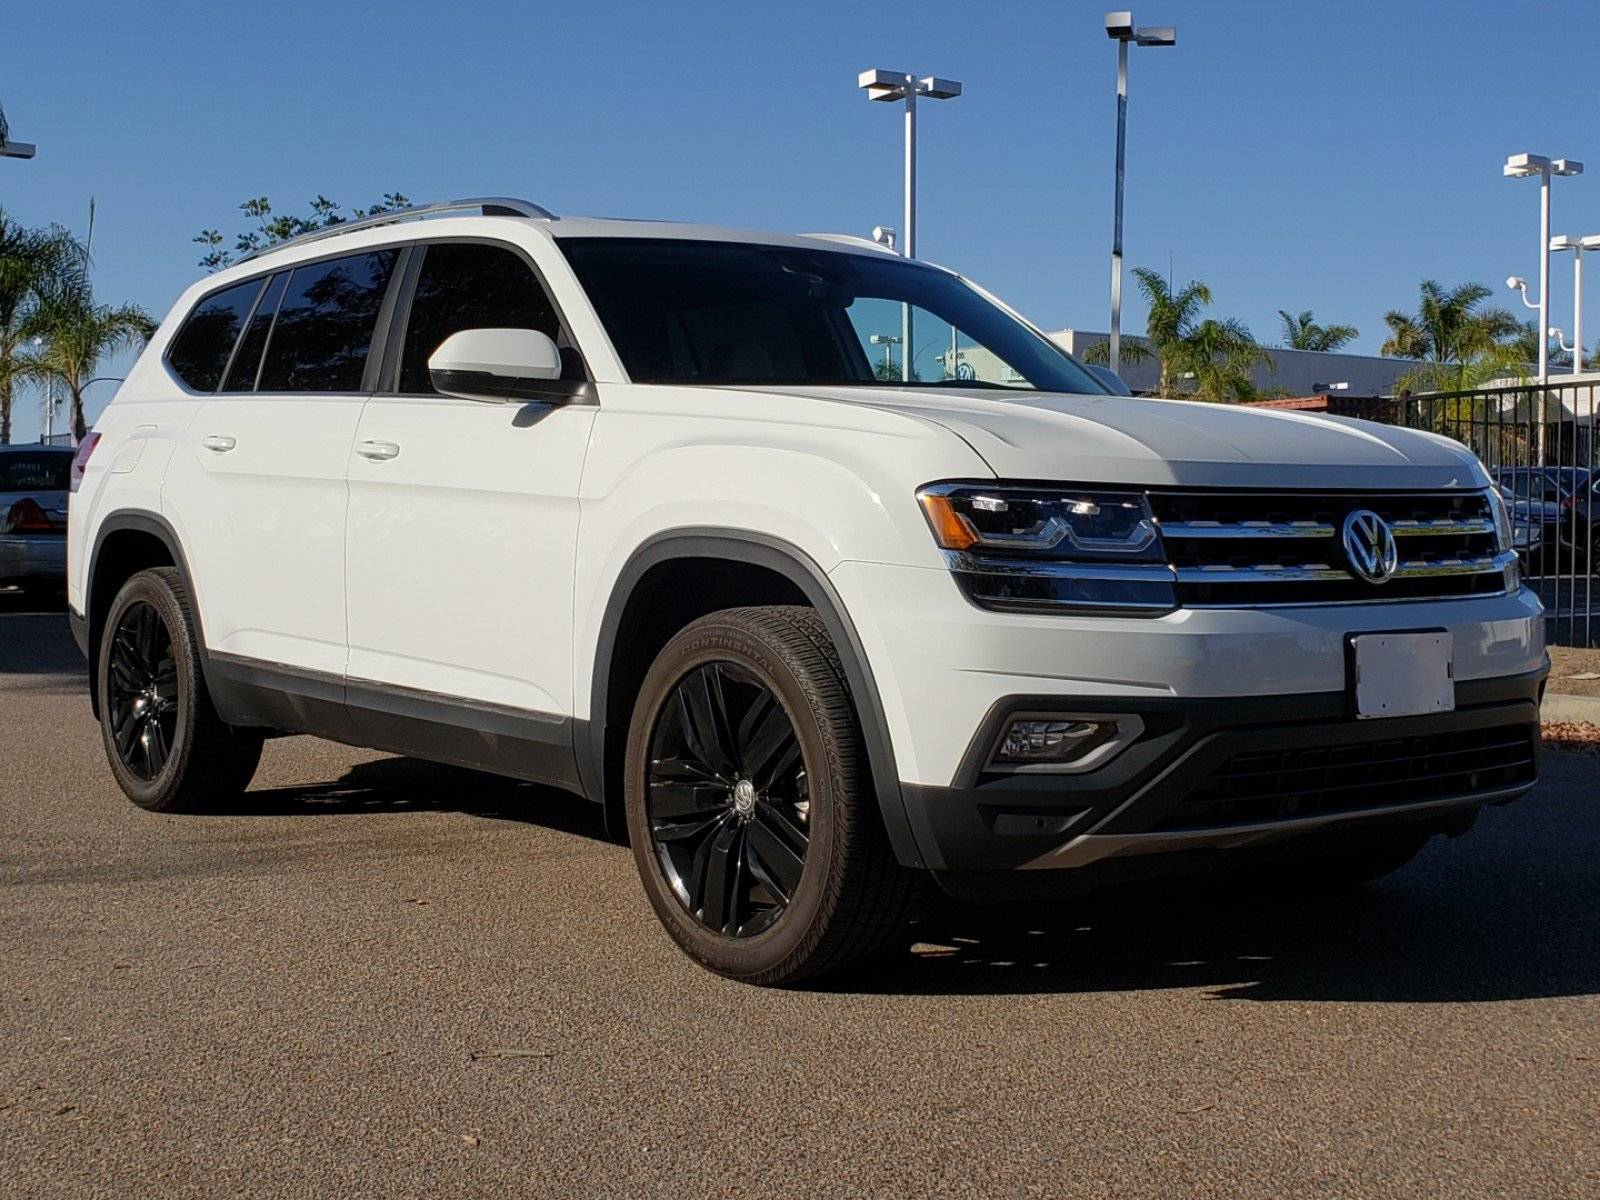 Volkswagen Lease Takeover In Innisfil On 2018 Volkswagen Atlas Highline 3 6l 8sp Manual Awd Id 9815 Leasecosts Canada